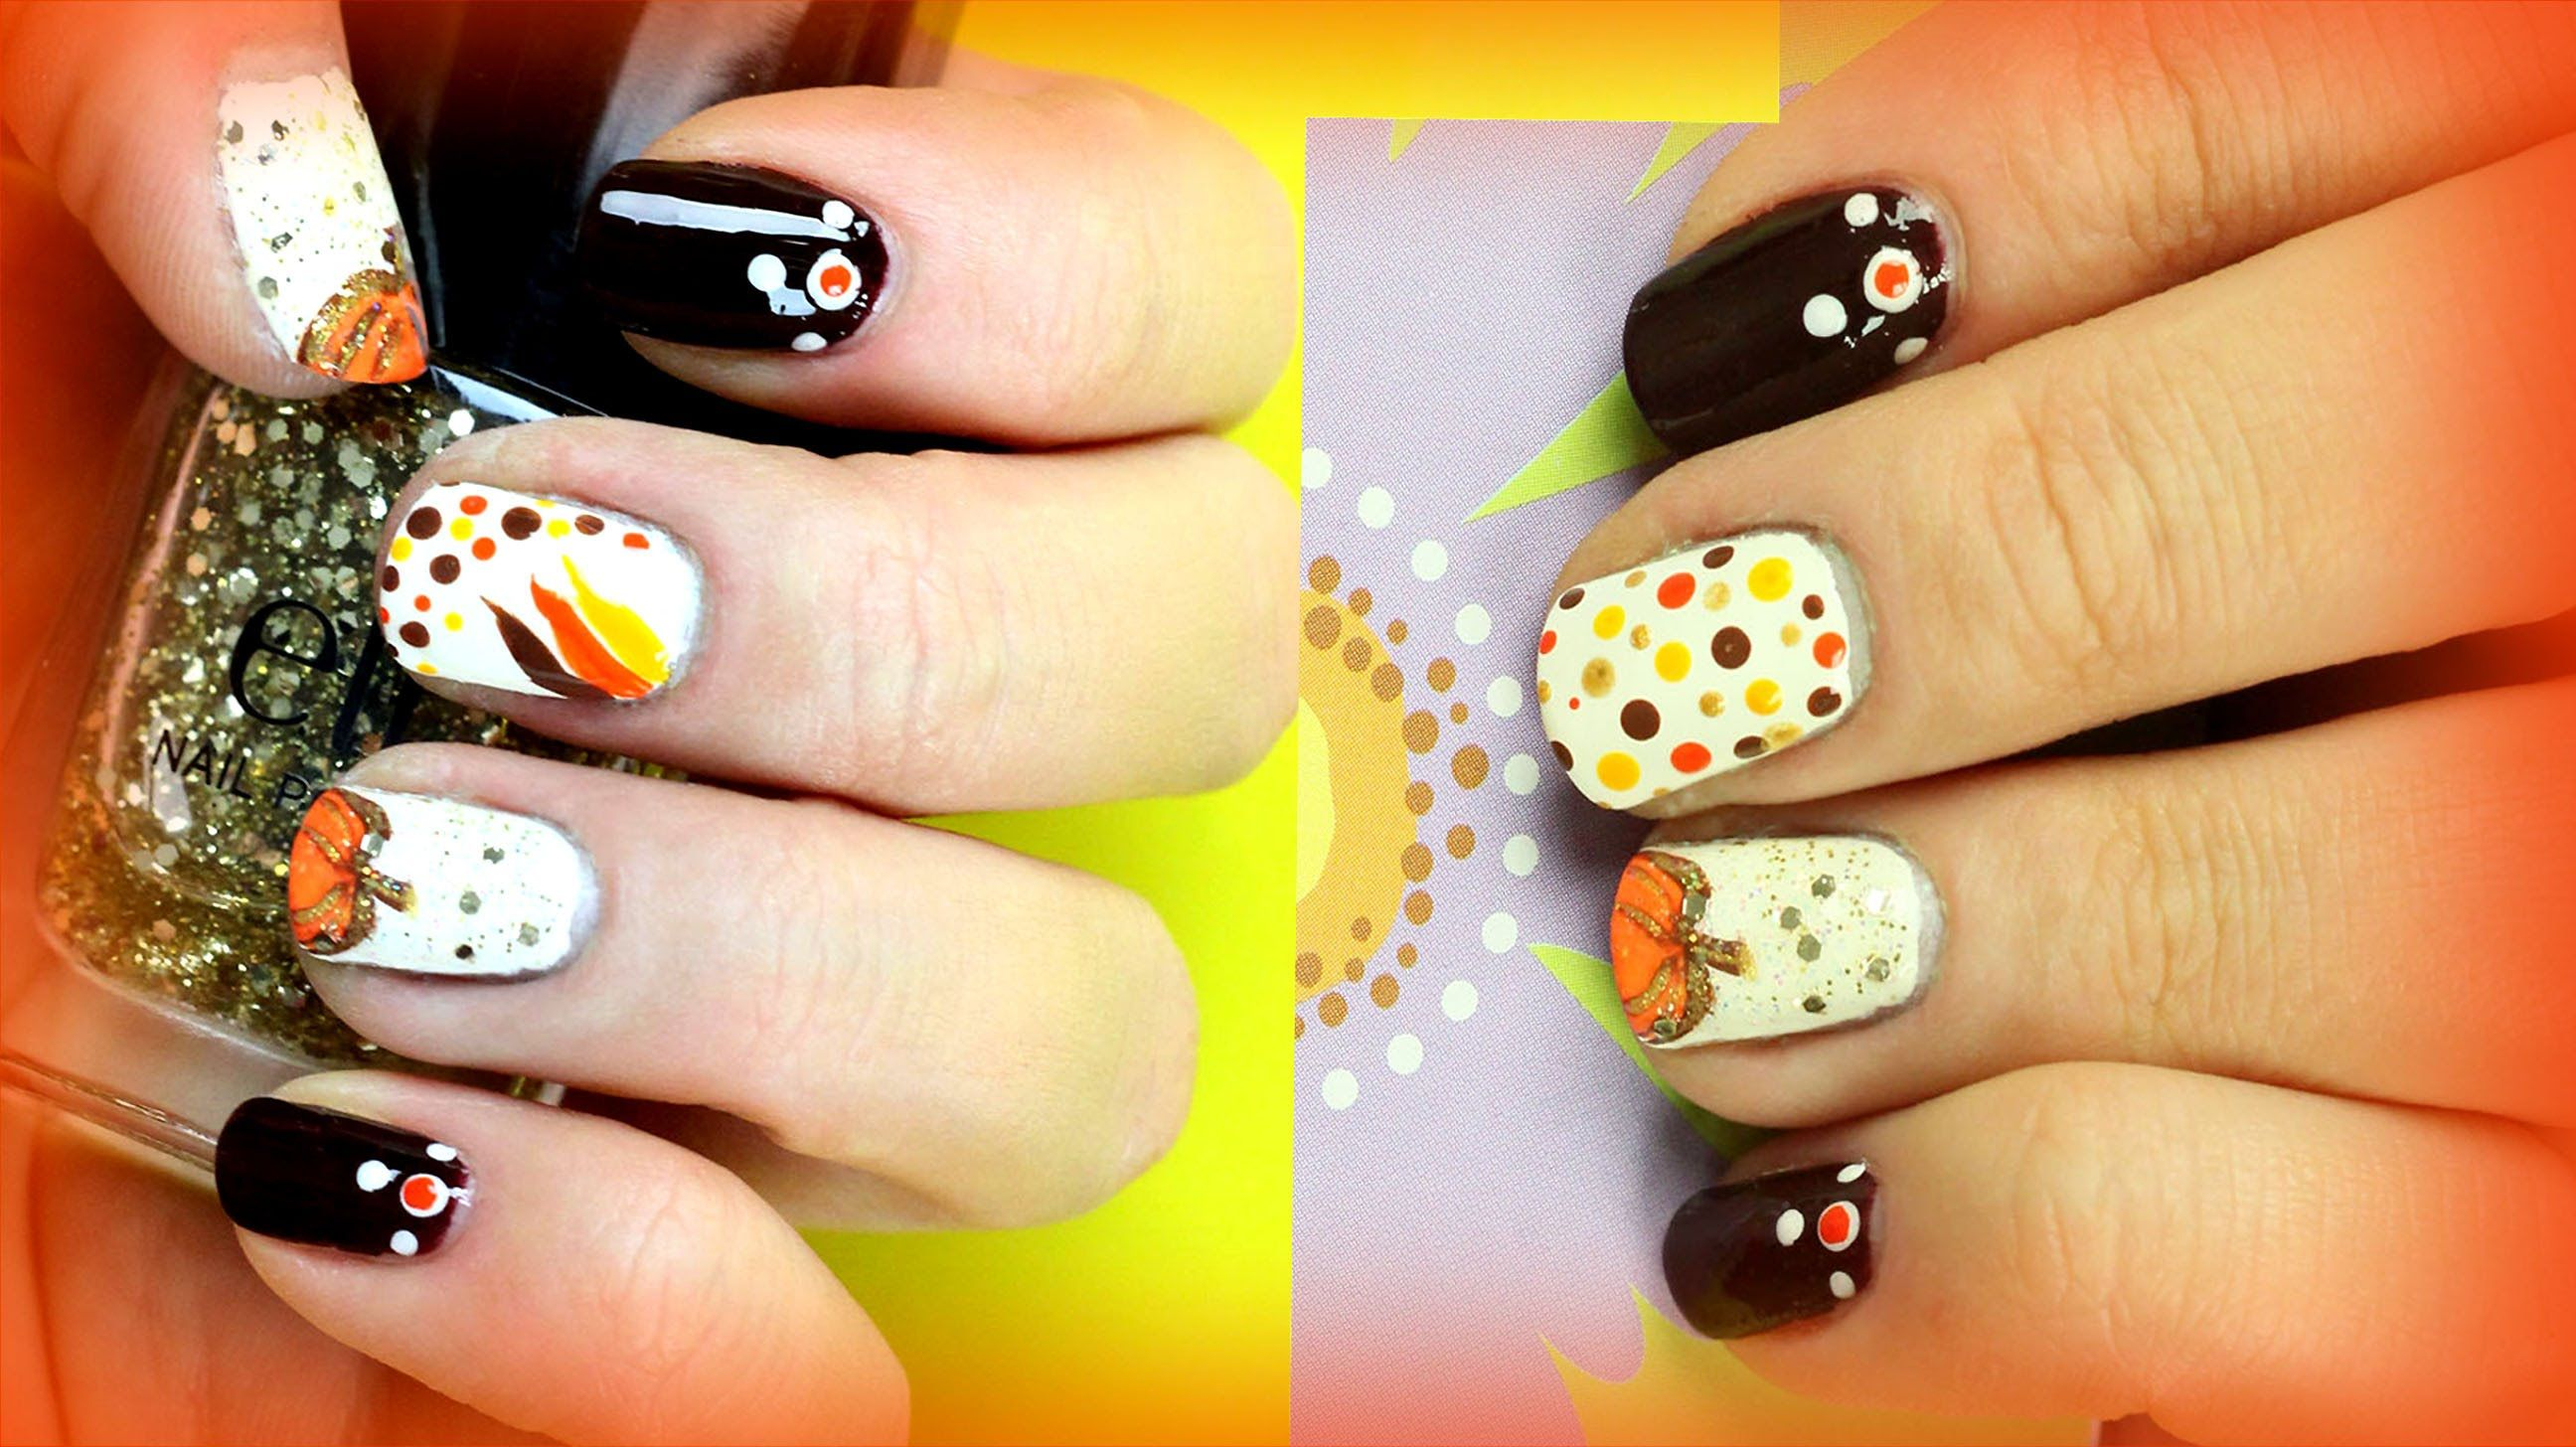 Bildresultat för nail art short nails | Skönhet | Pinterest ...